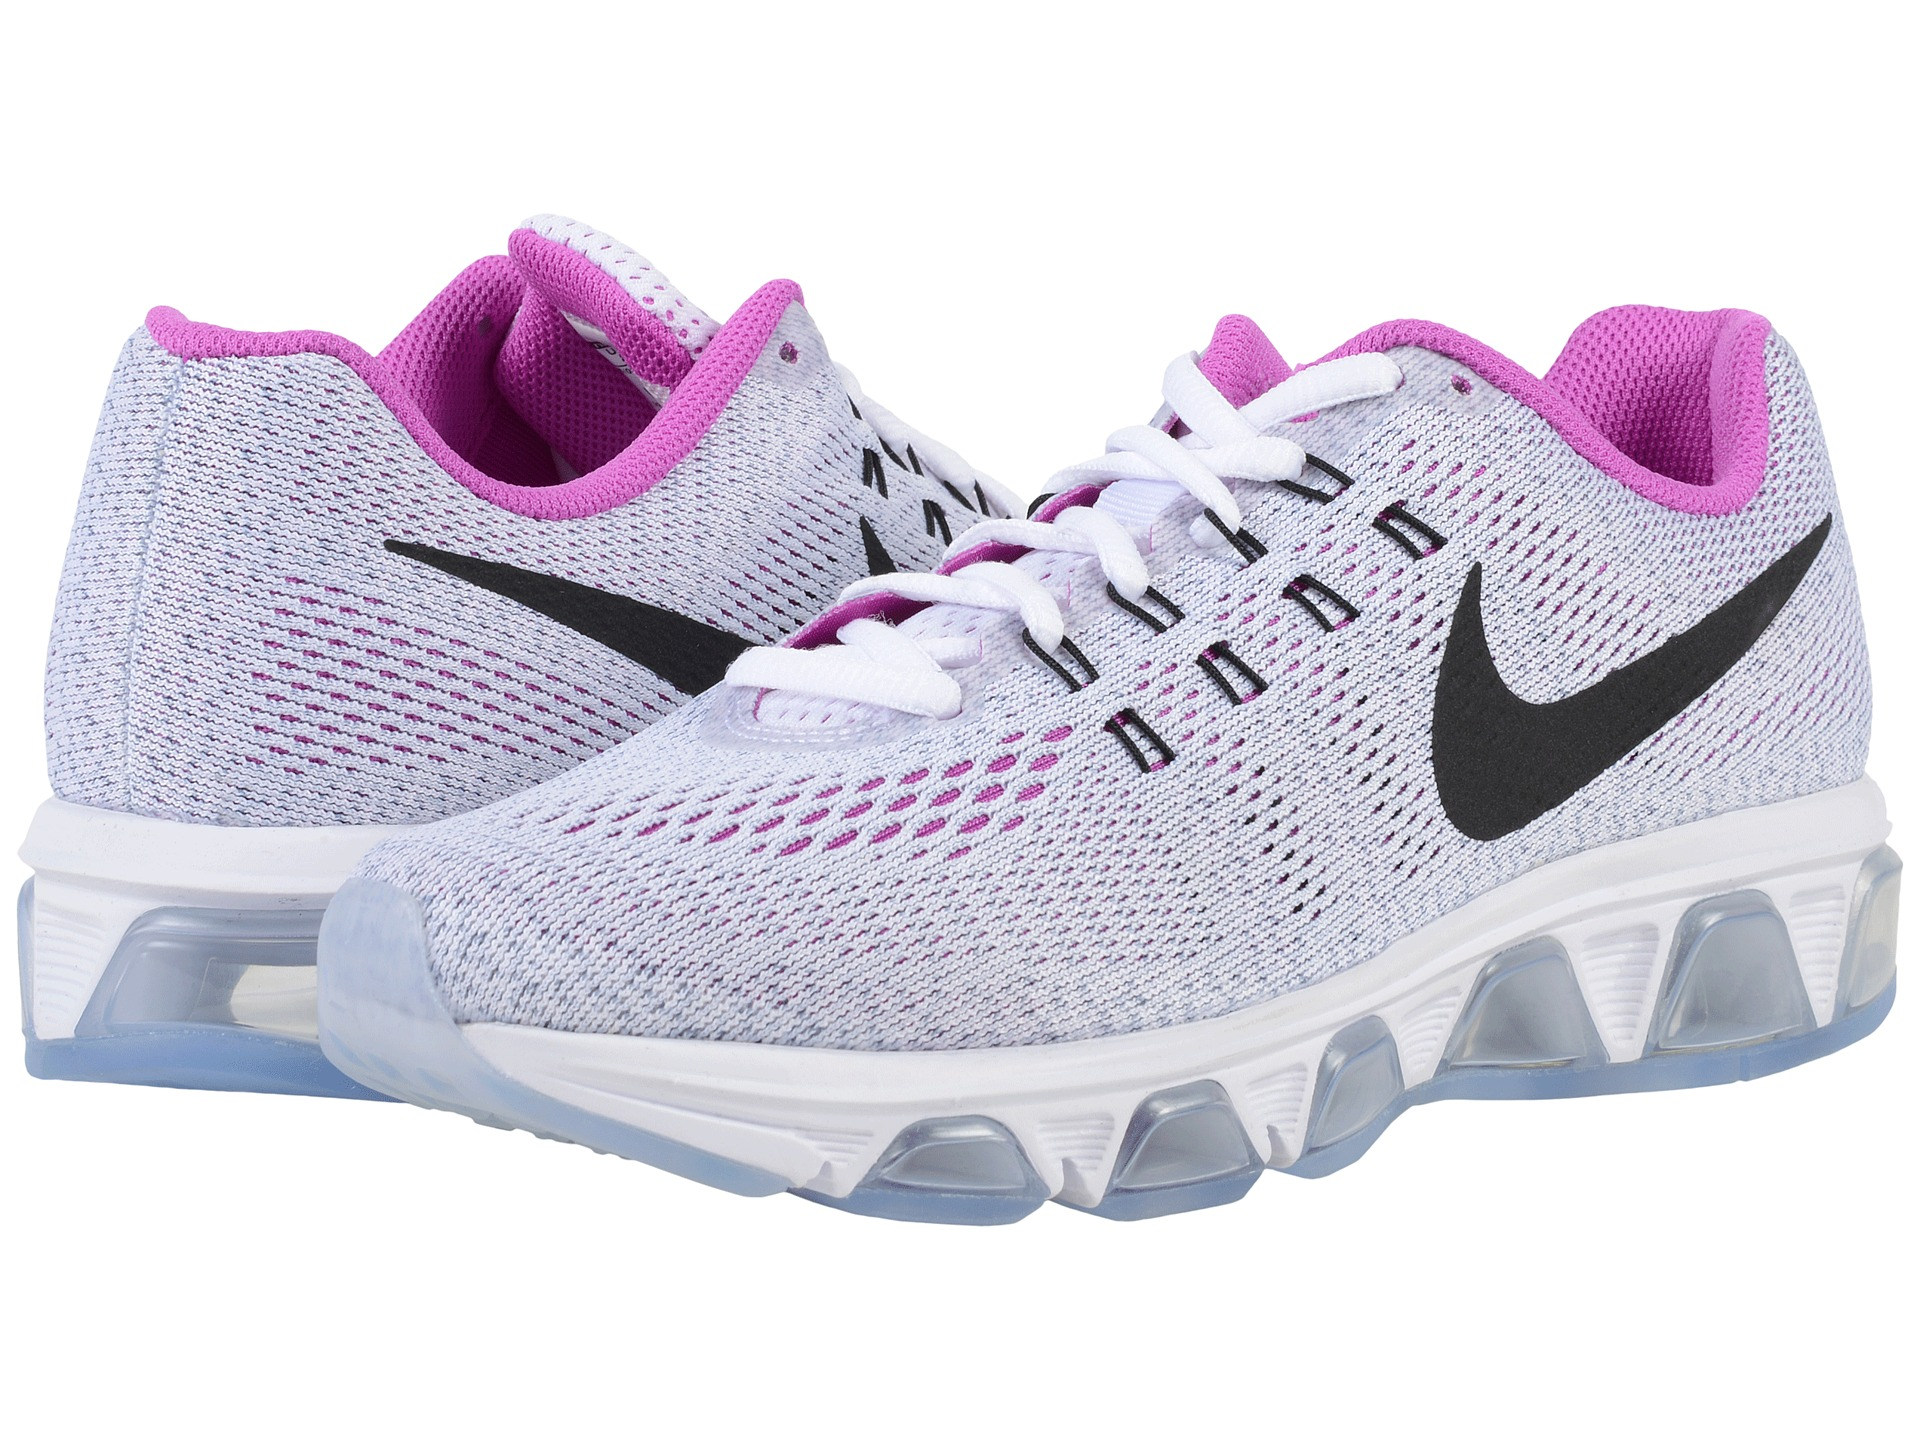 Nike Air Max Tailwind 8 at 6pm.com